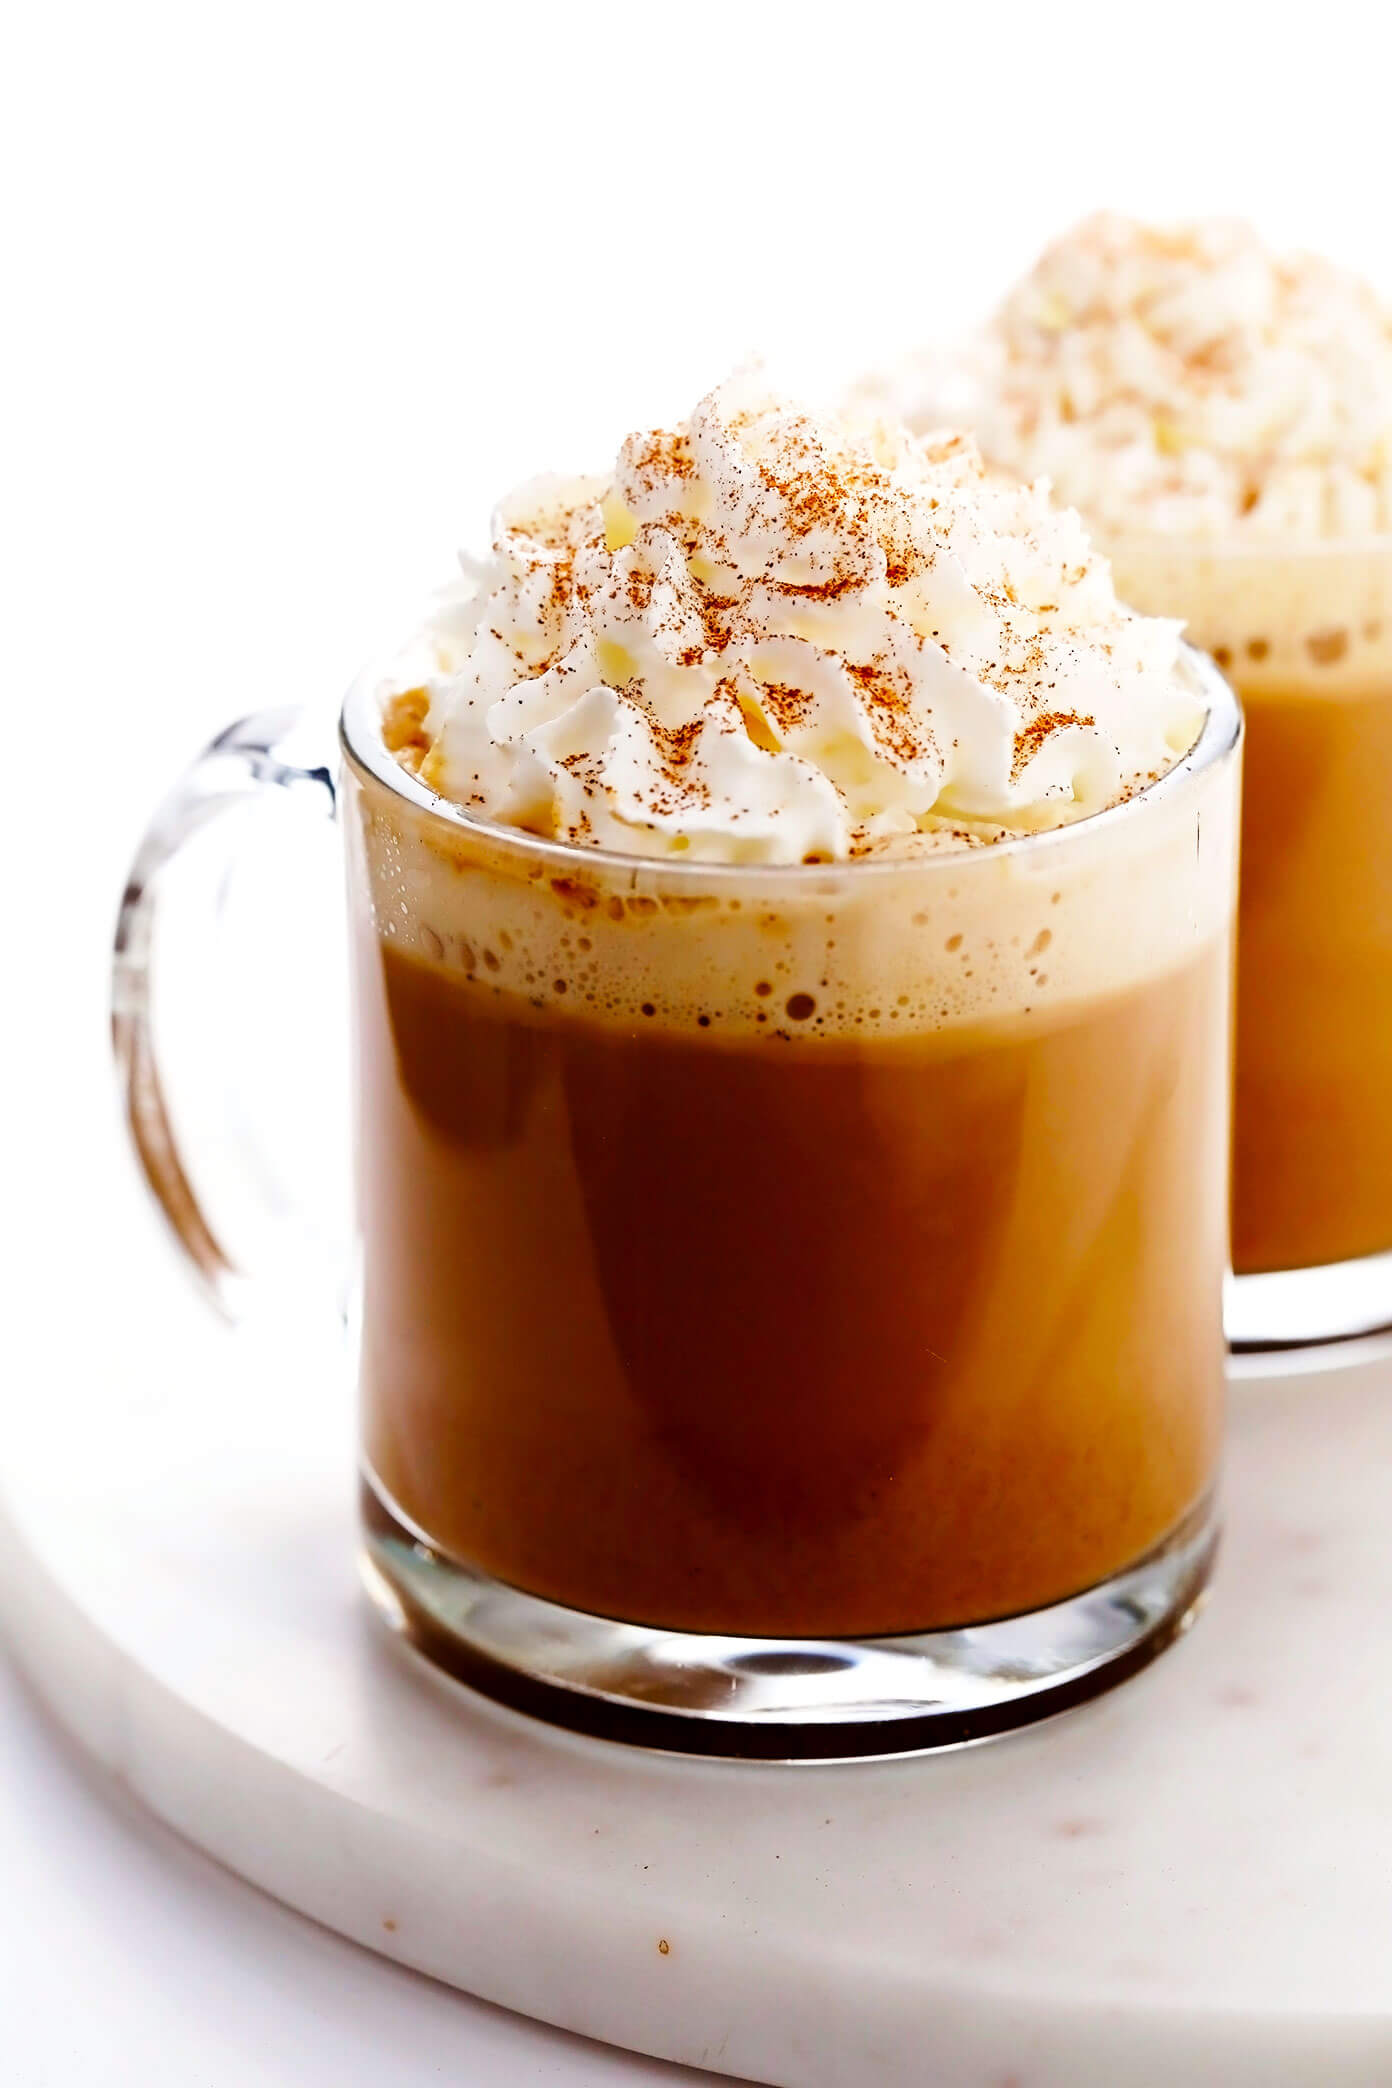 Homemade Pumpkin Spice Latte with Whipped Cream and Pumpkin Pie Spice